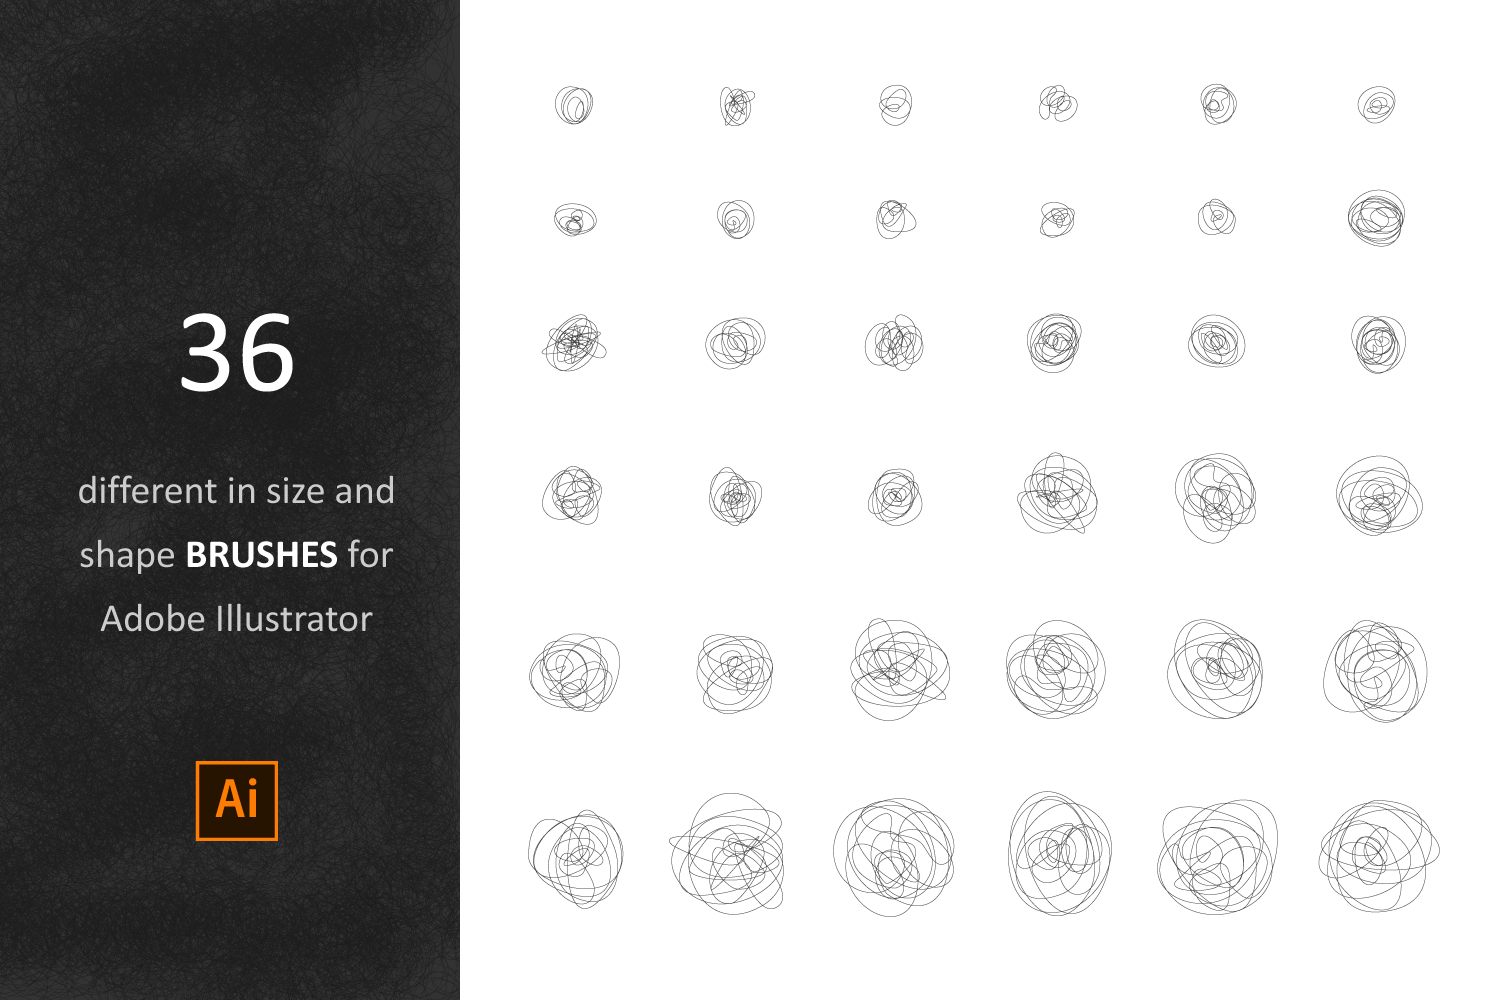 36 Tangle Brushes for Adobe Illustrator